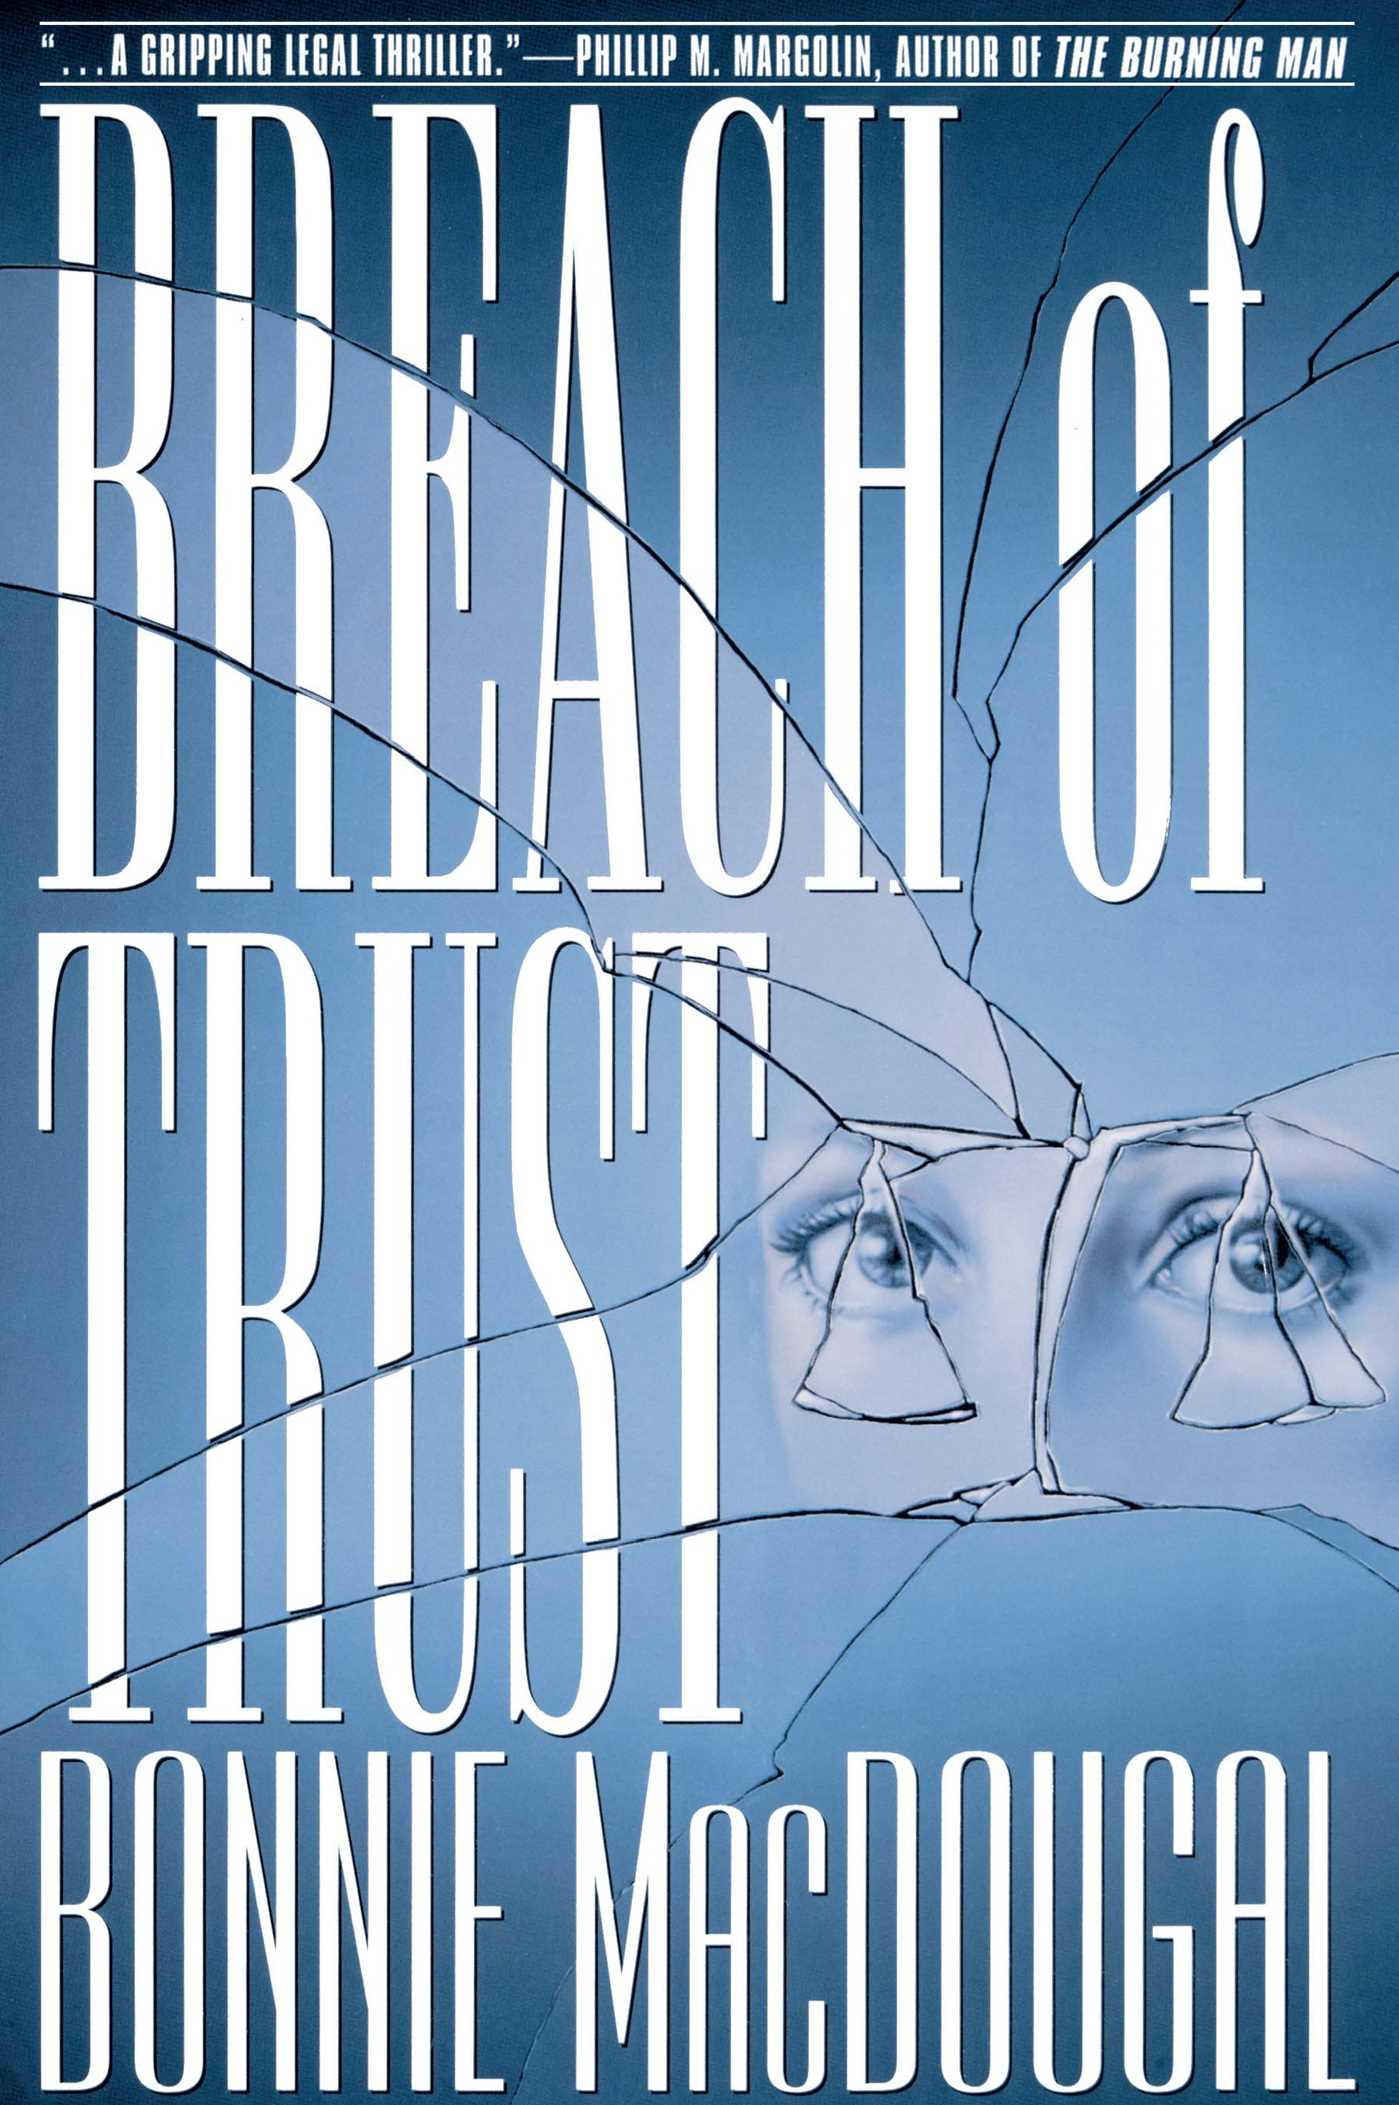 Breach of trust 9780743465144 hr